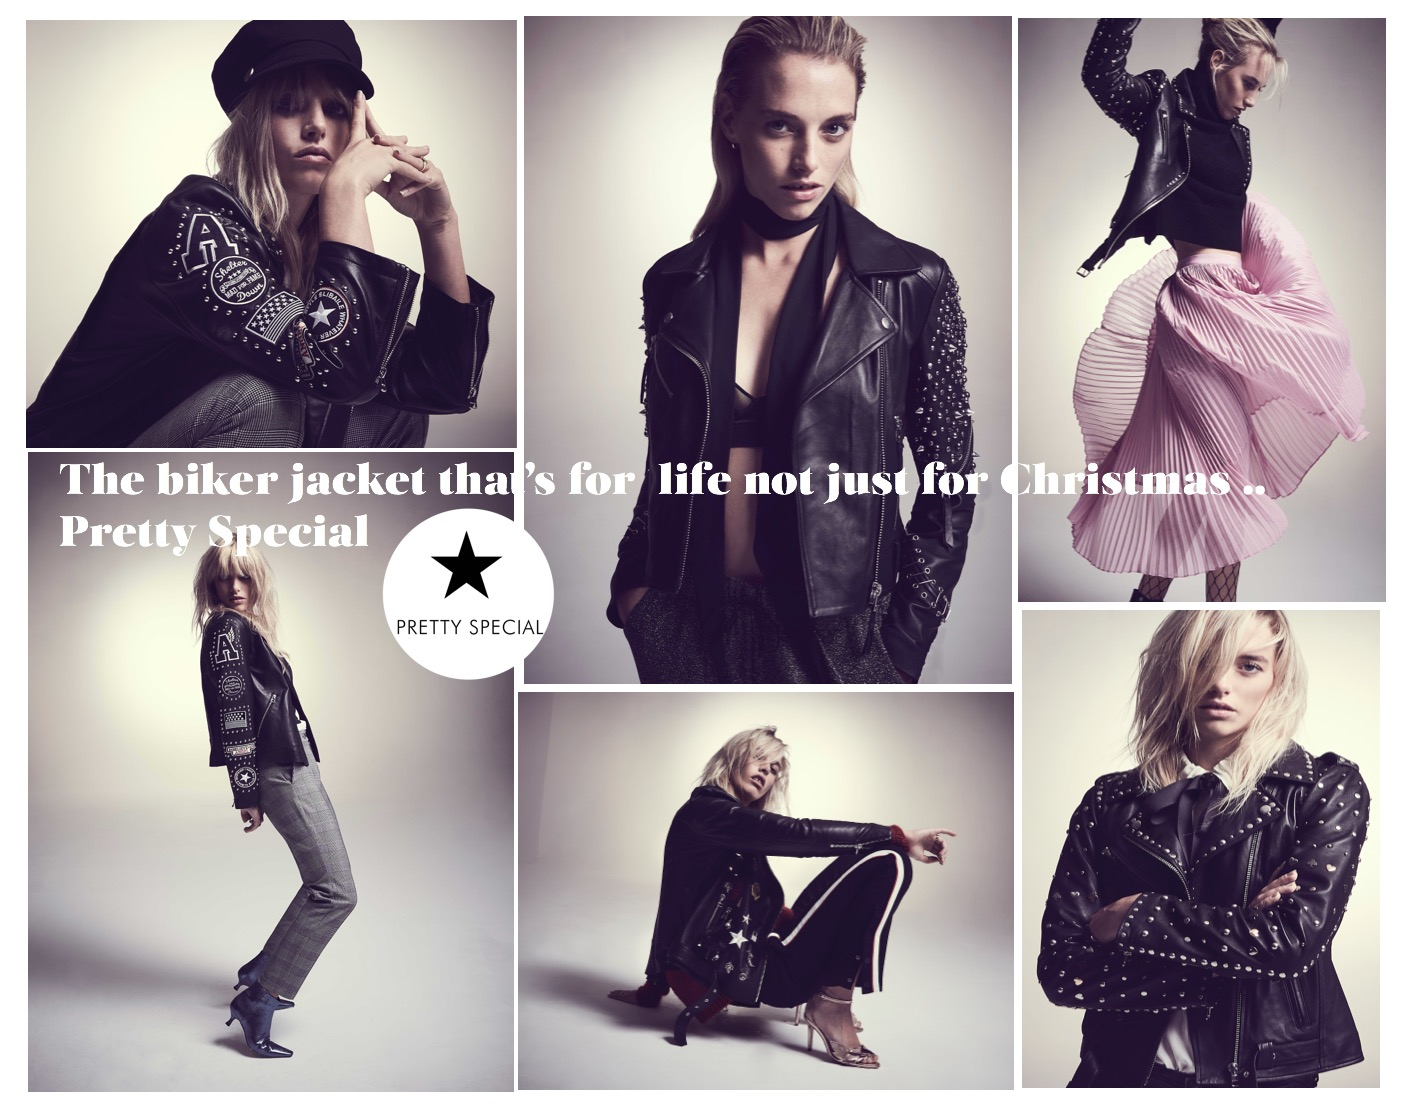 A womens biker jacket is not just for Christmas